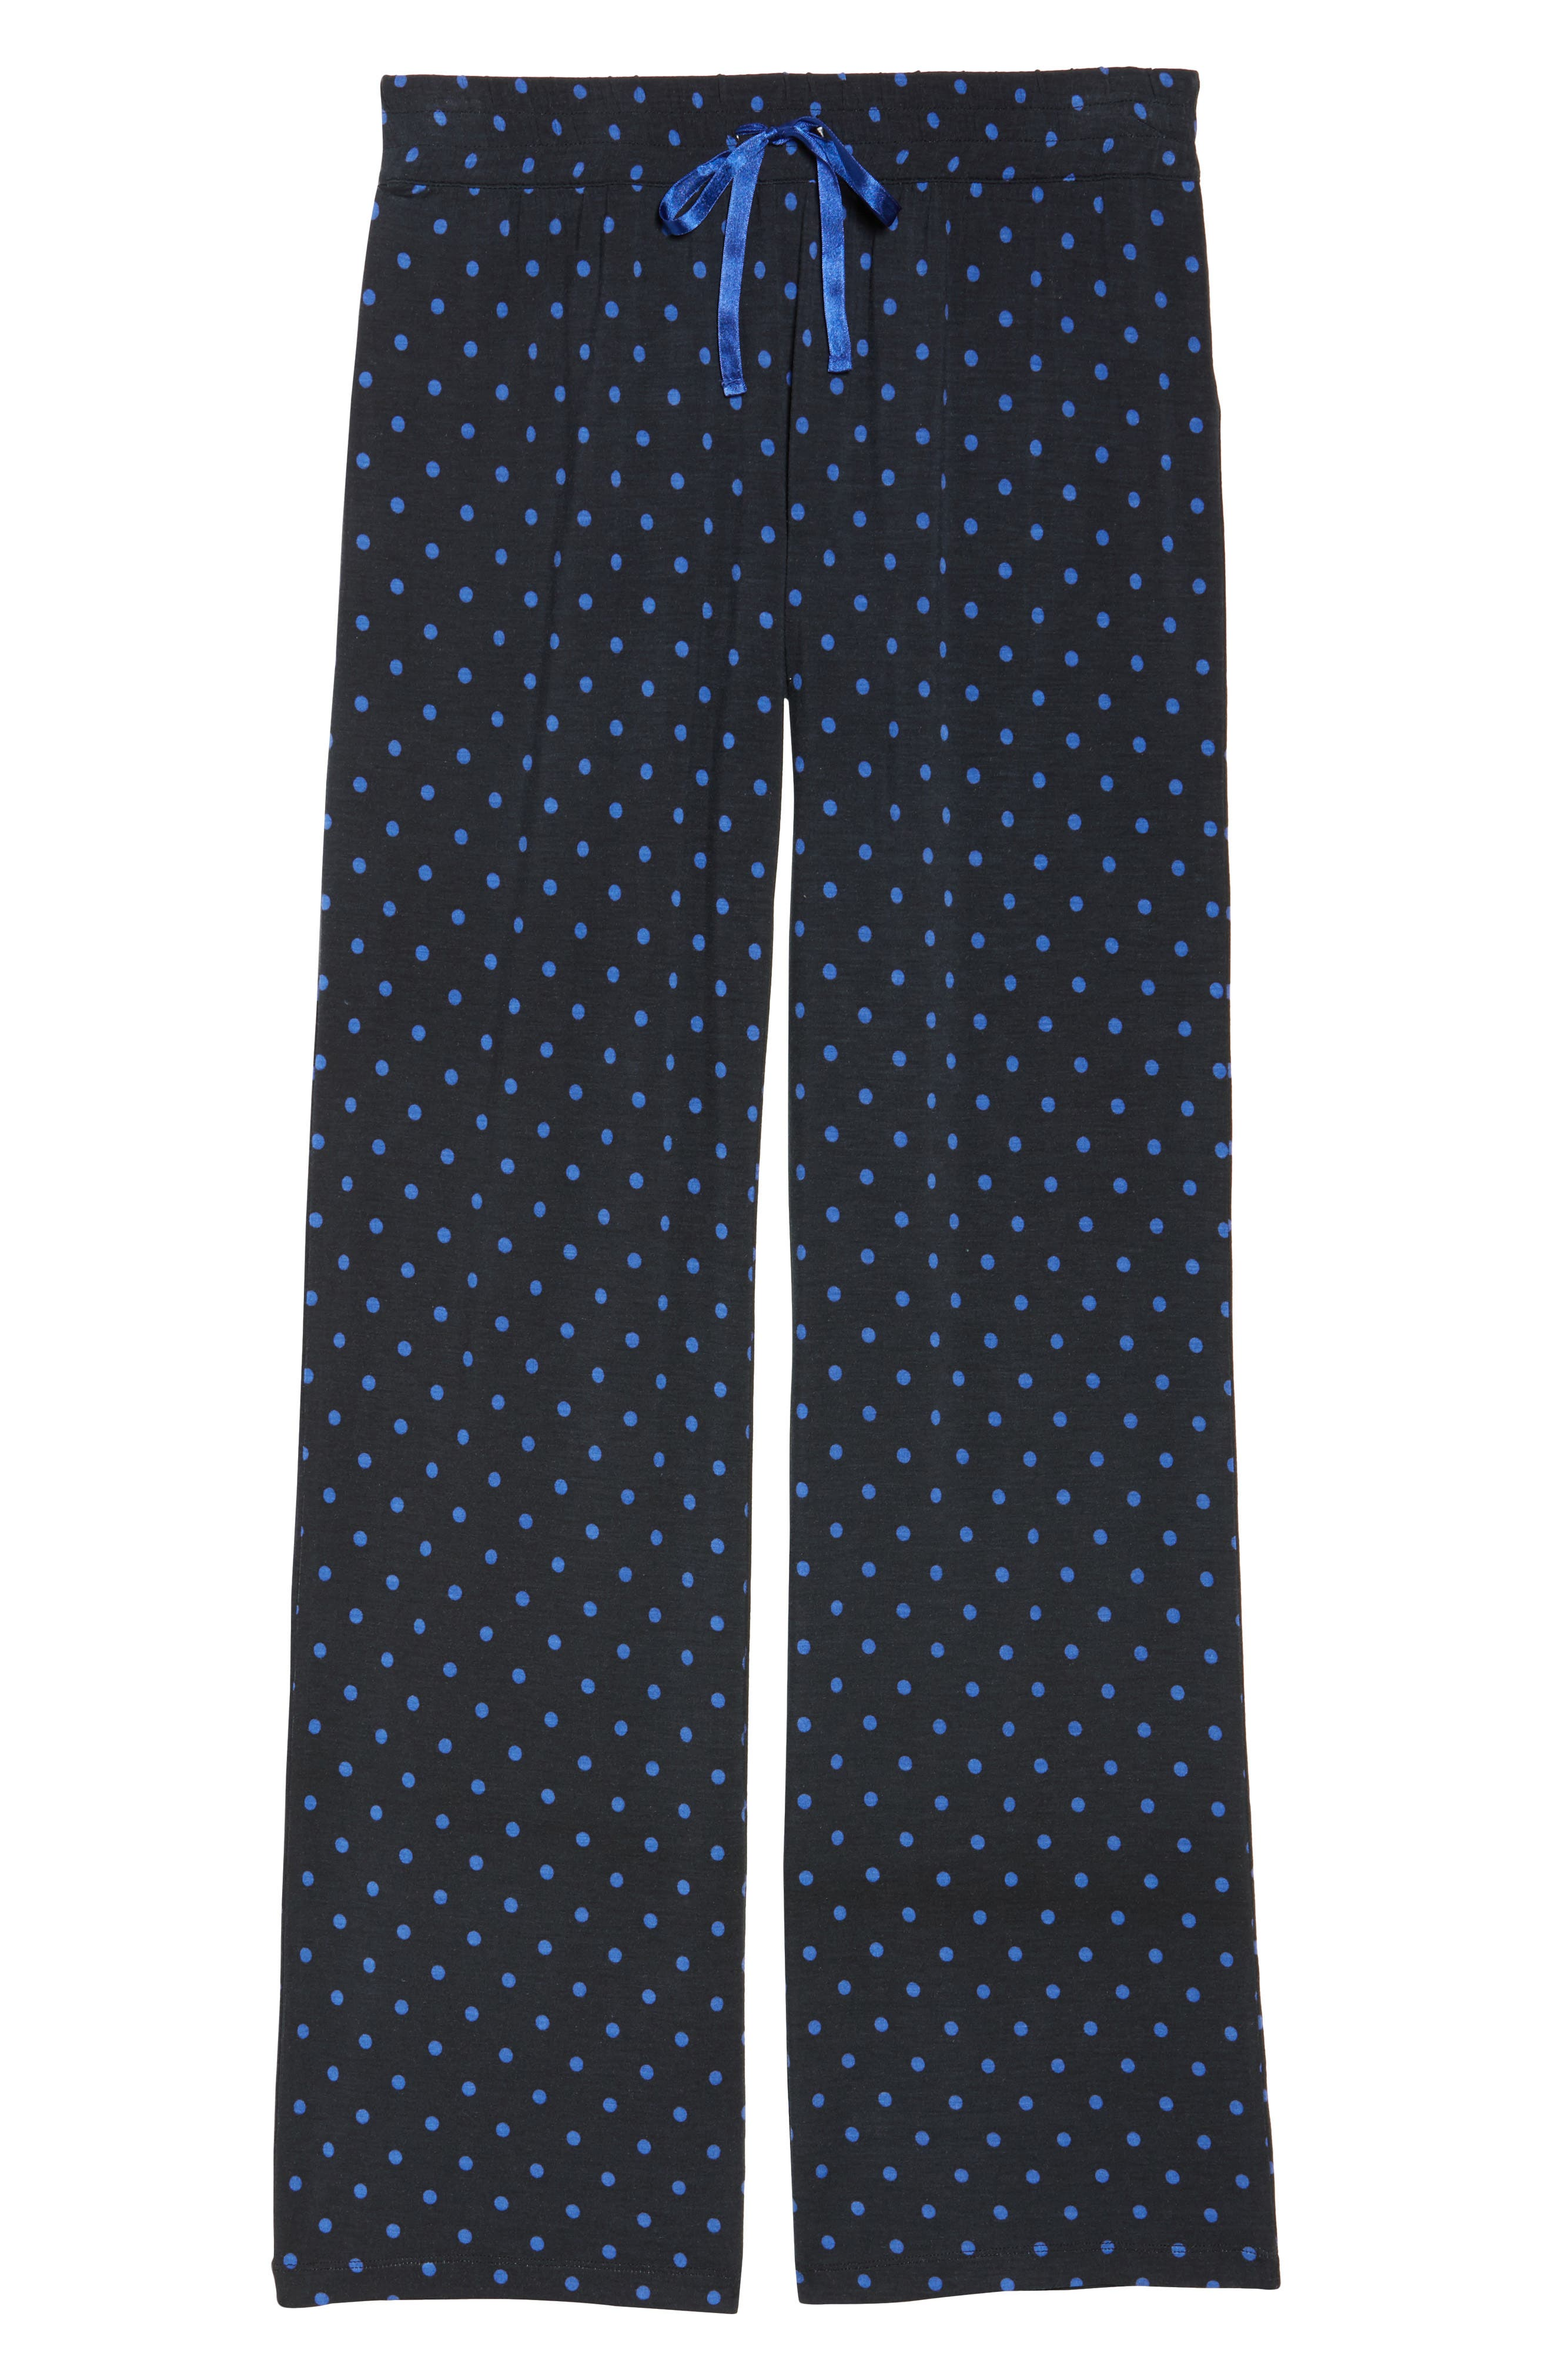 Dot Lounge Pants,                             Alternate thumbnail 6, color,                             400